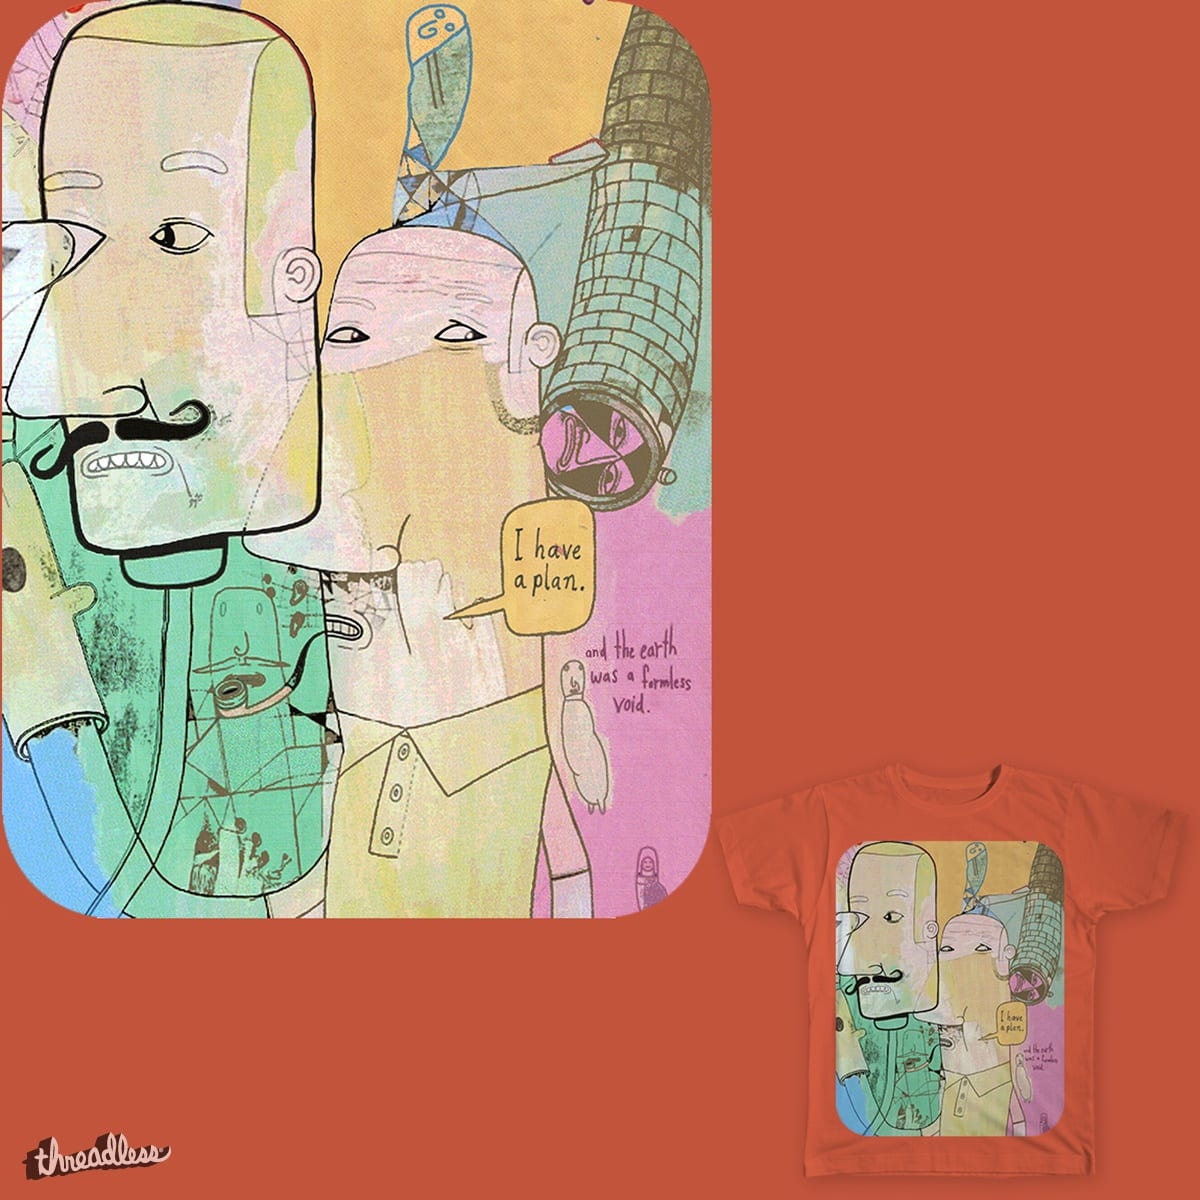 i have a plan by Peter Thompson on Threadless